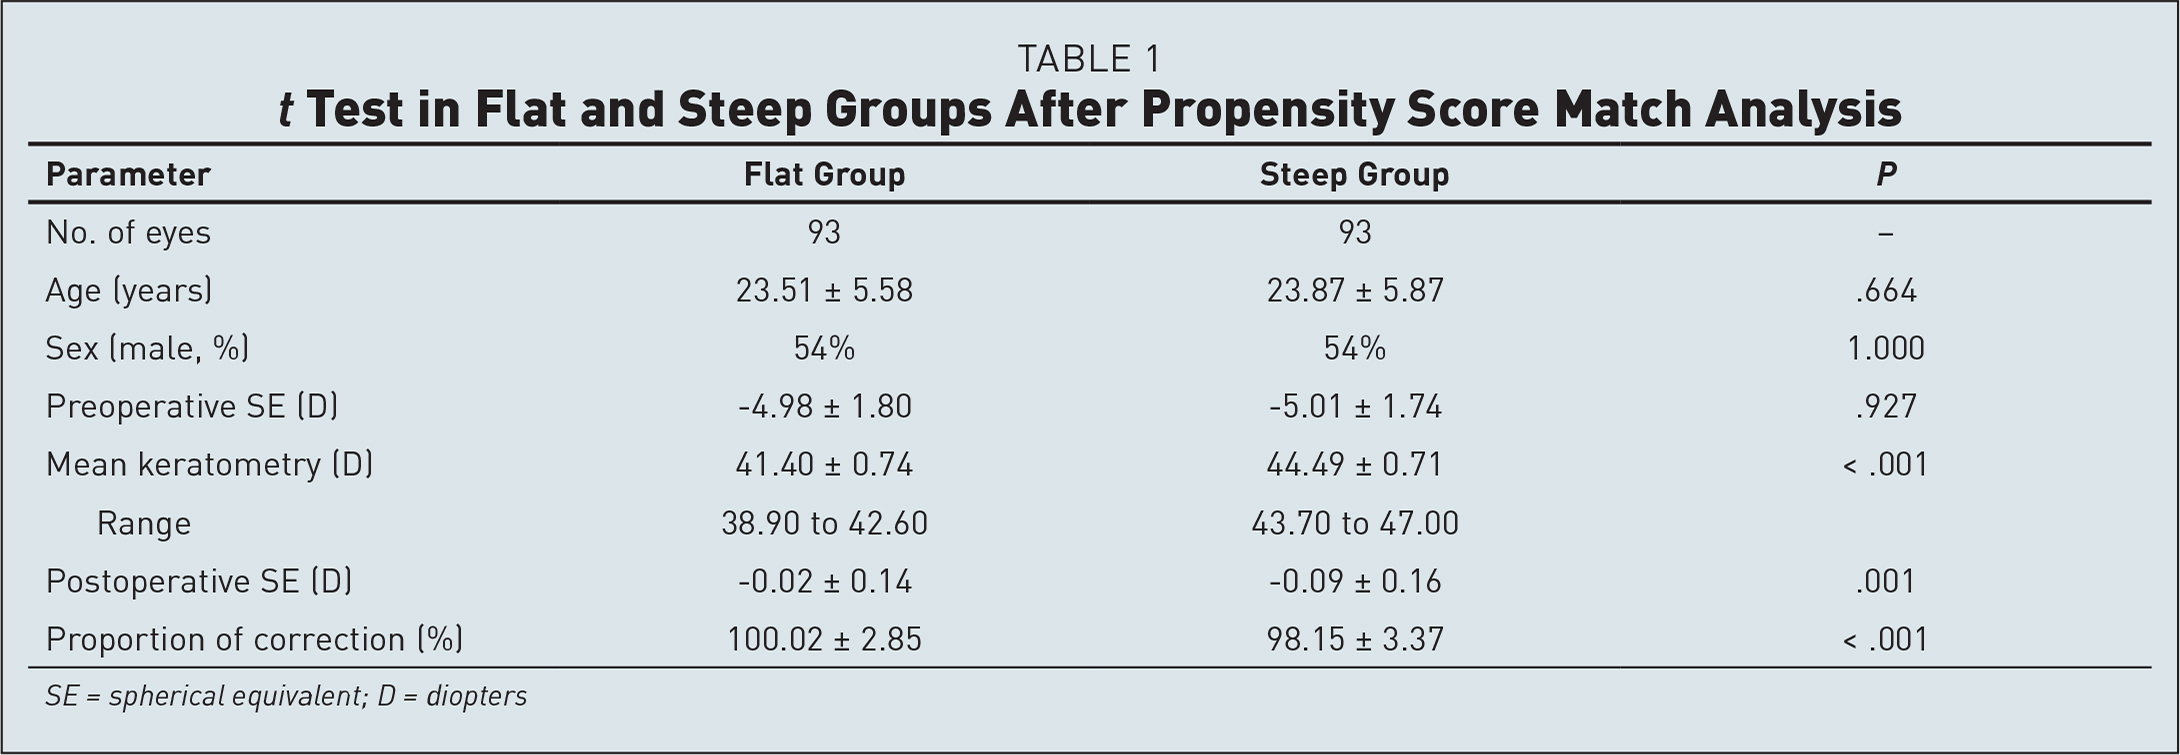 t Test in Flat and Steep Groups After Propensity Score Match Analysis